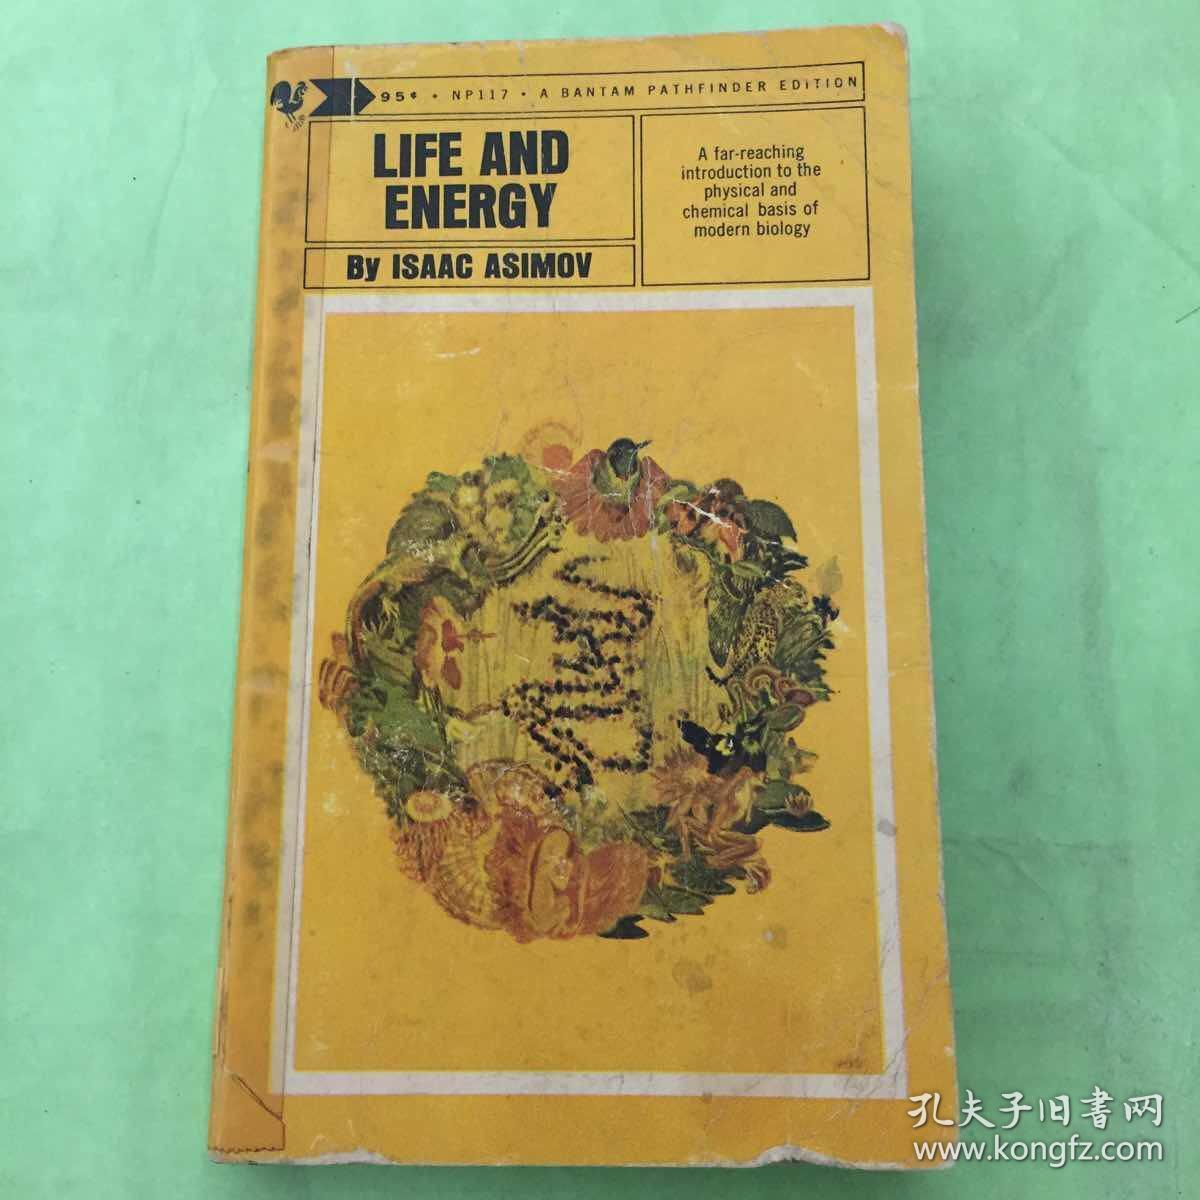 LIFE AND ENERGY By ISAAC ASIMOV(艾萨克·阿西莫夫的《生命与能量》)英文原版